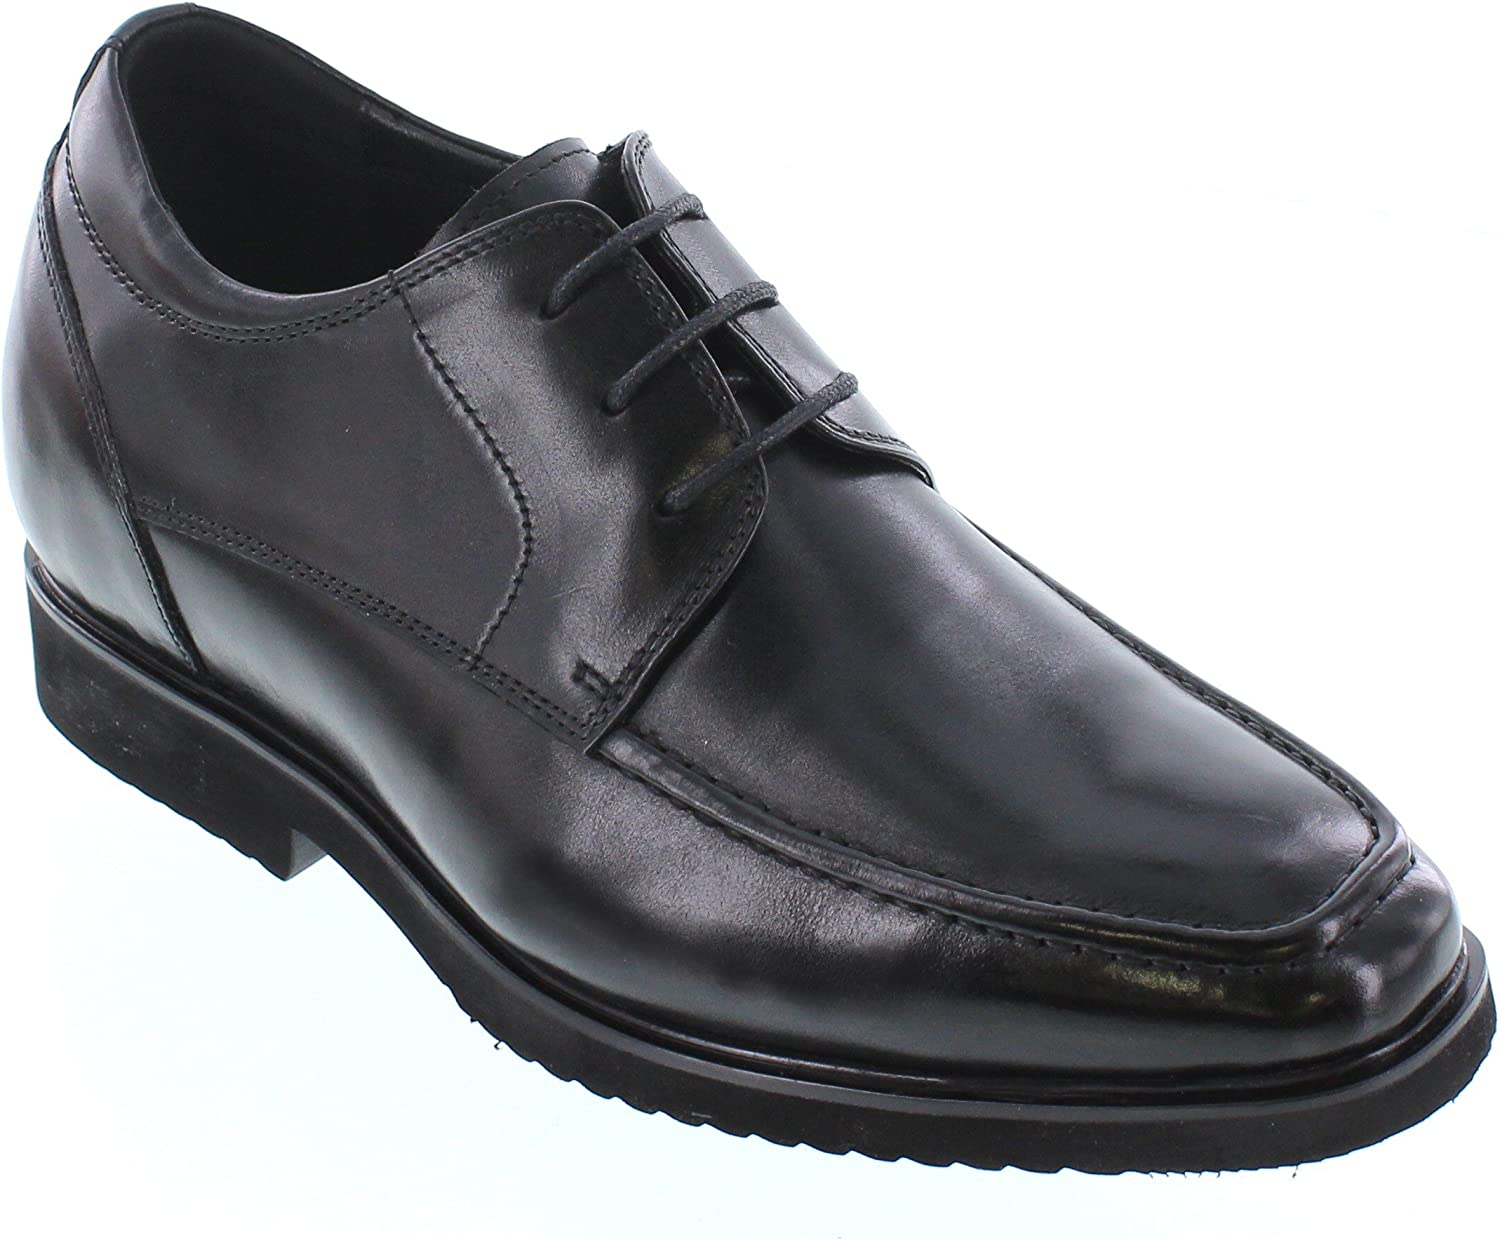 CALTO Men's Invisible Height Increasing Elevator Shoes - Black Premium Leather Lace-up Lightweight Formal Derby Oxfords - 2.8 Inches Taller - T54012